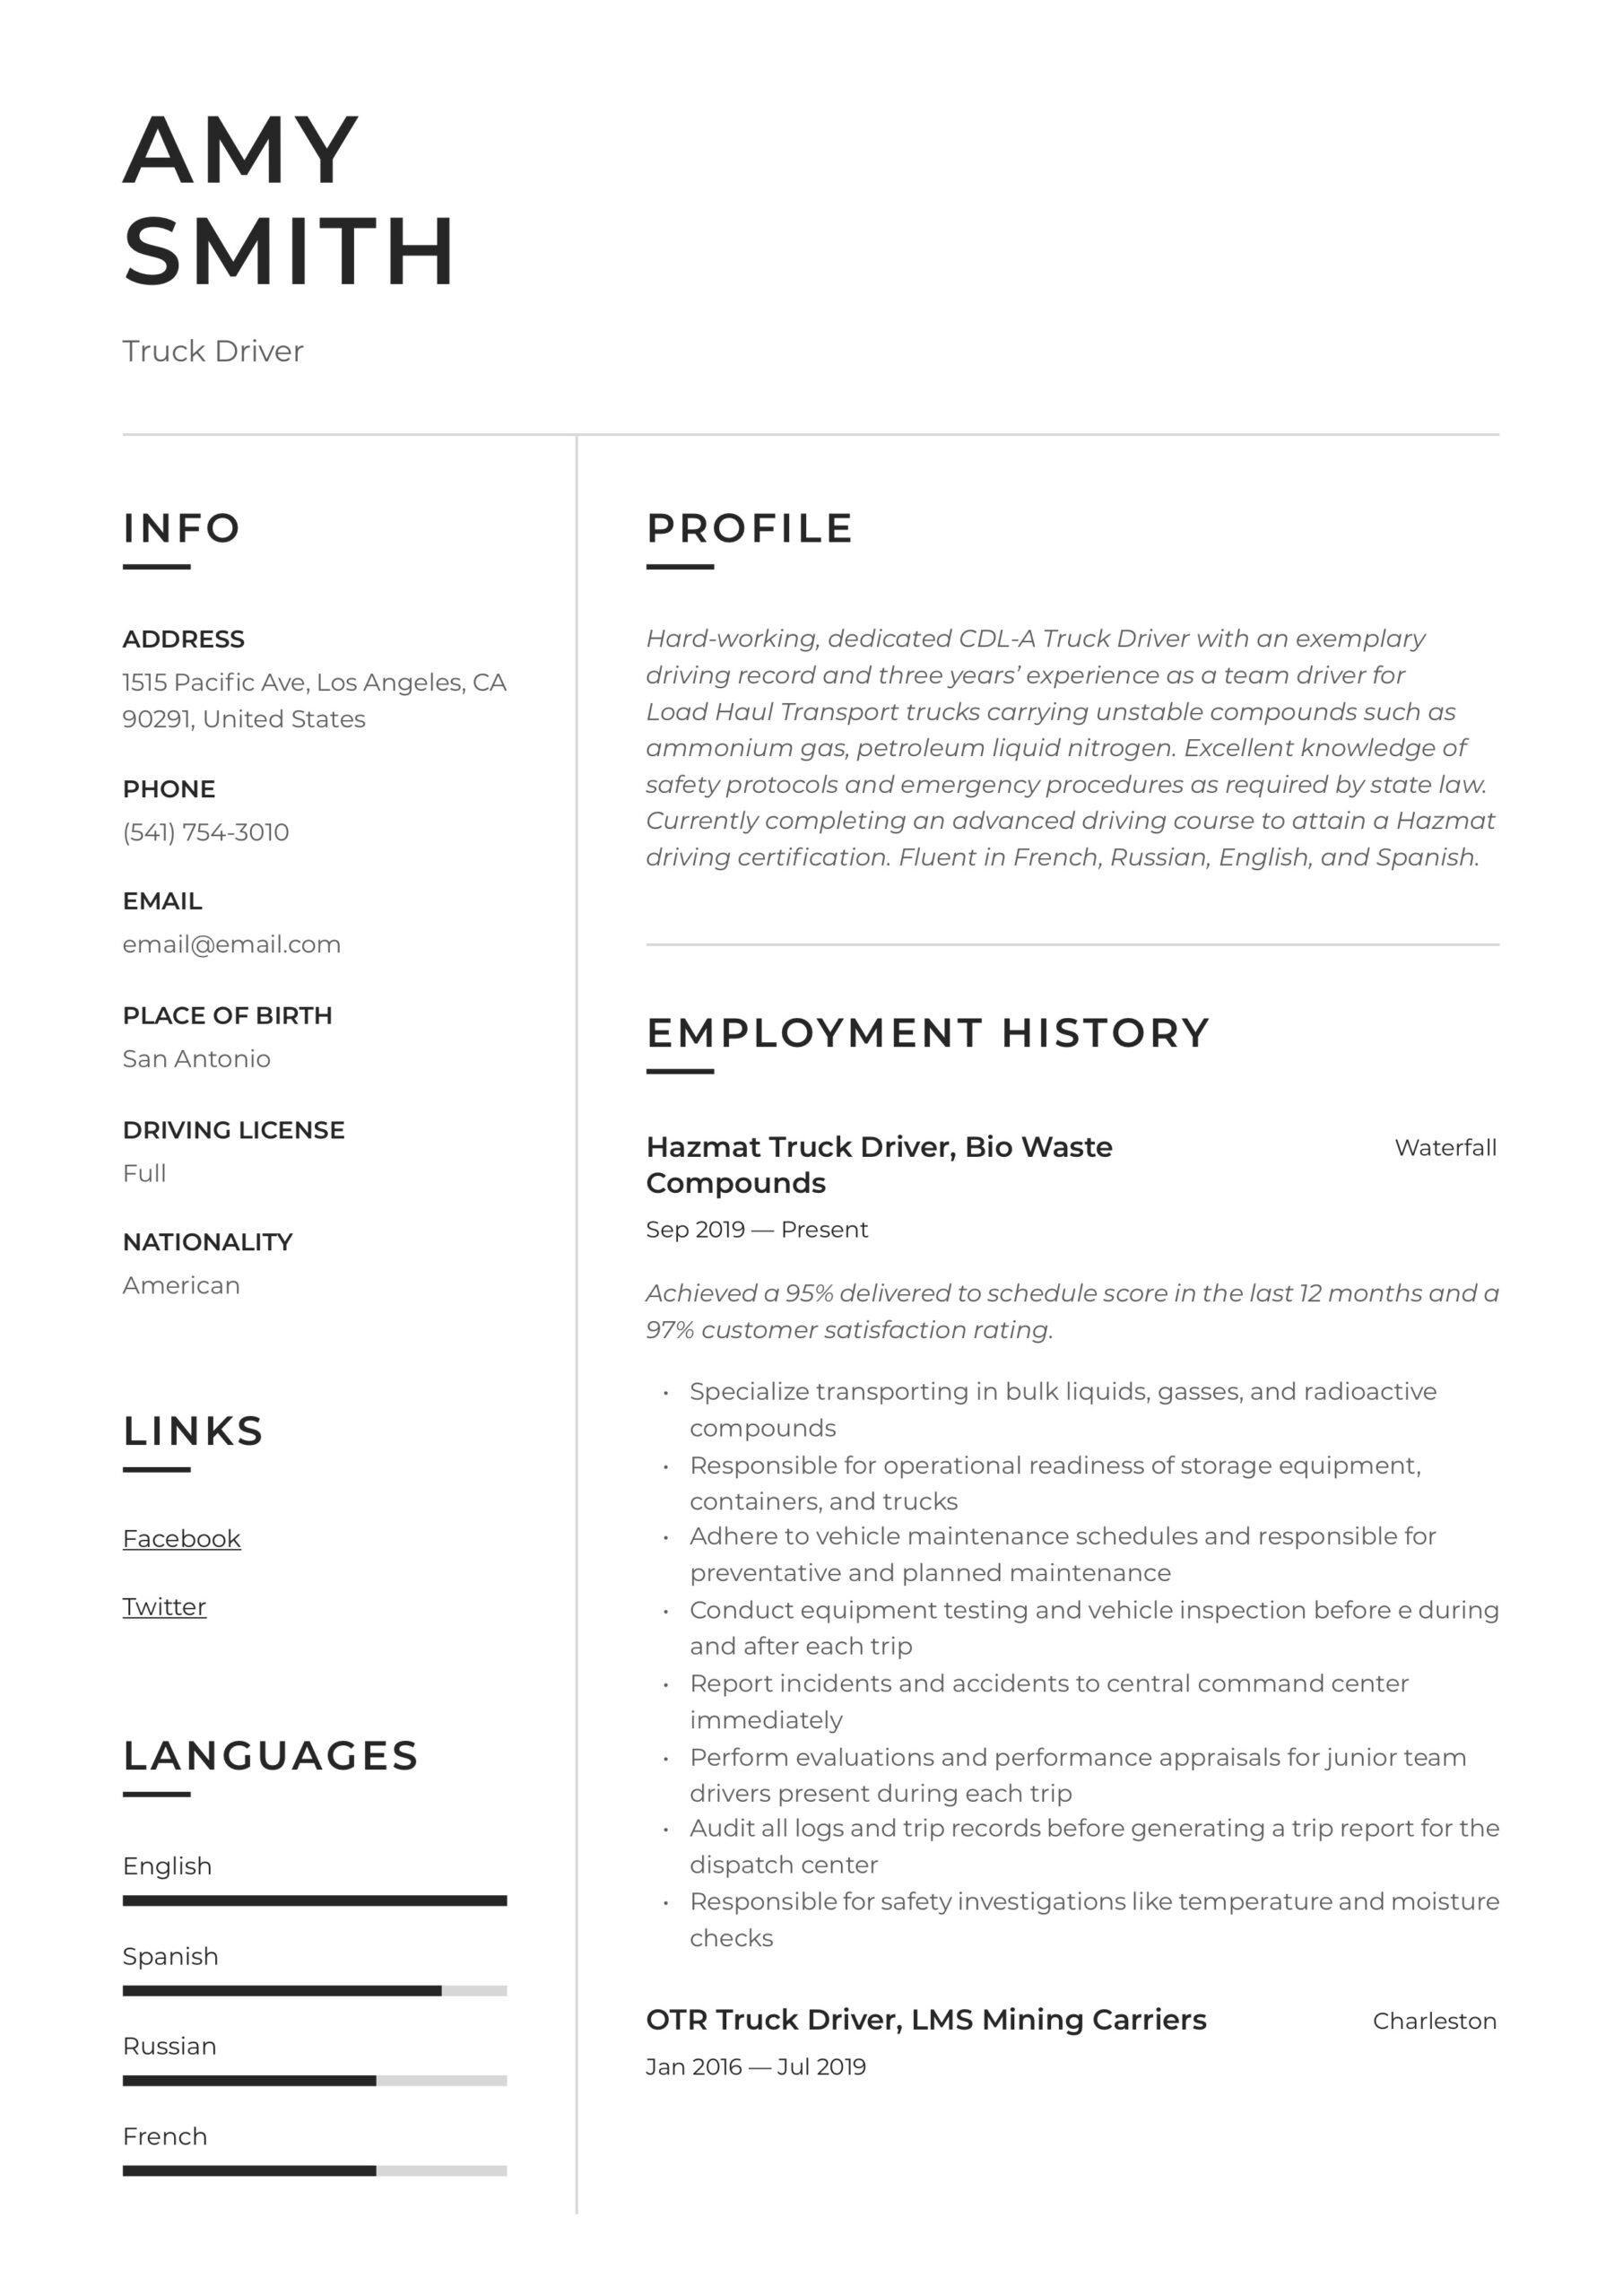 truck driver resume writing guide examples database computer science projects for jeb Resume Truck Driver Resume Database